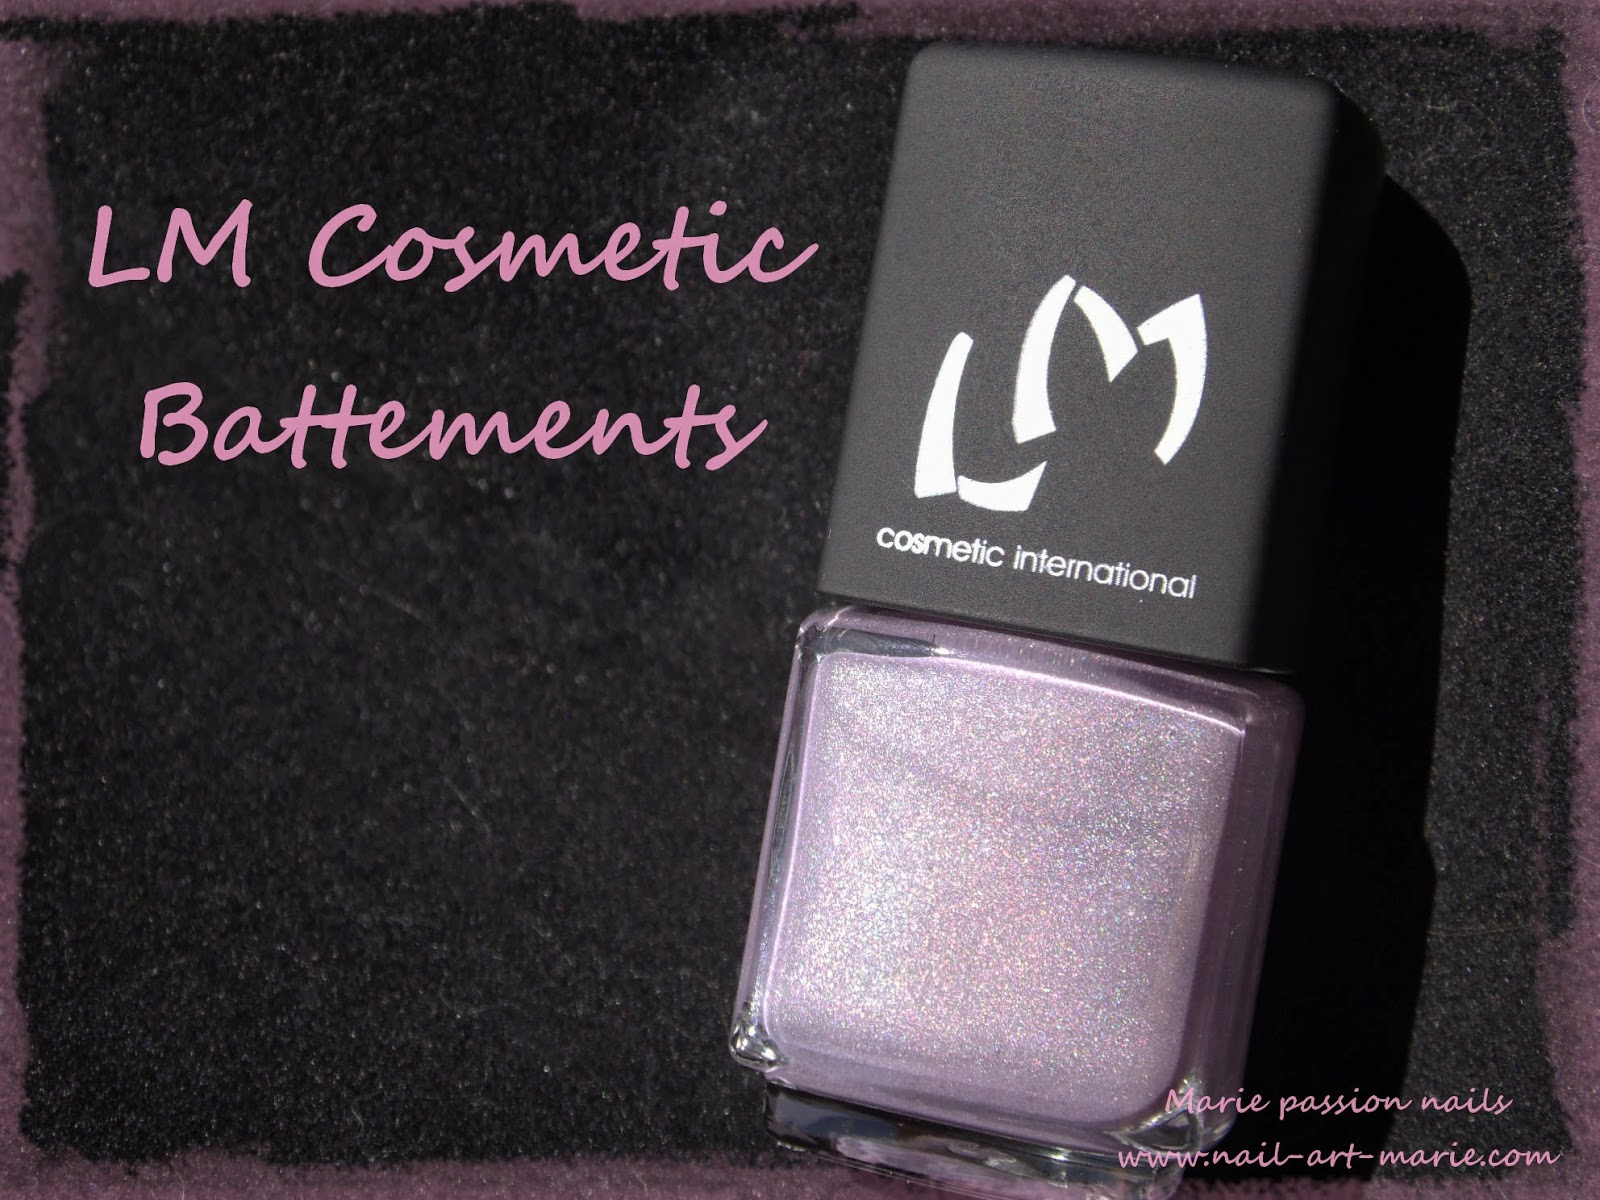 LM Cosmetic Battements1